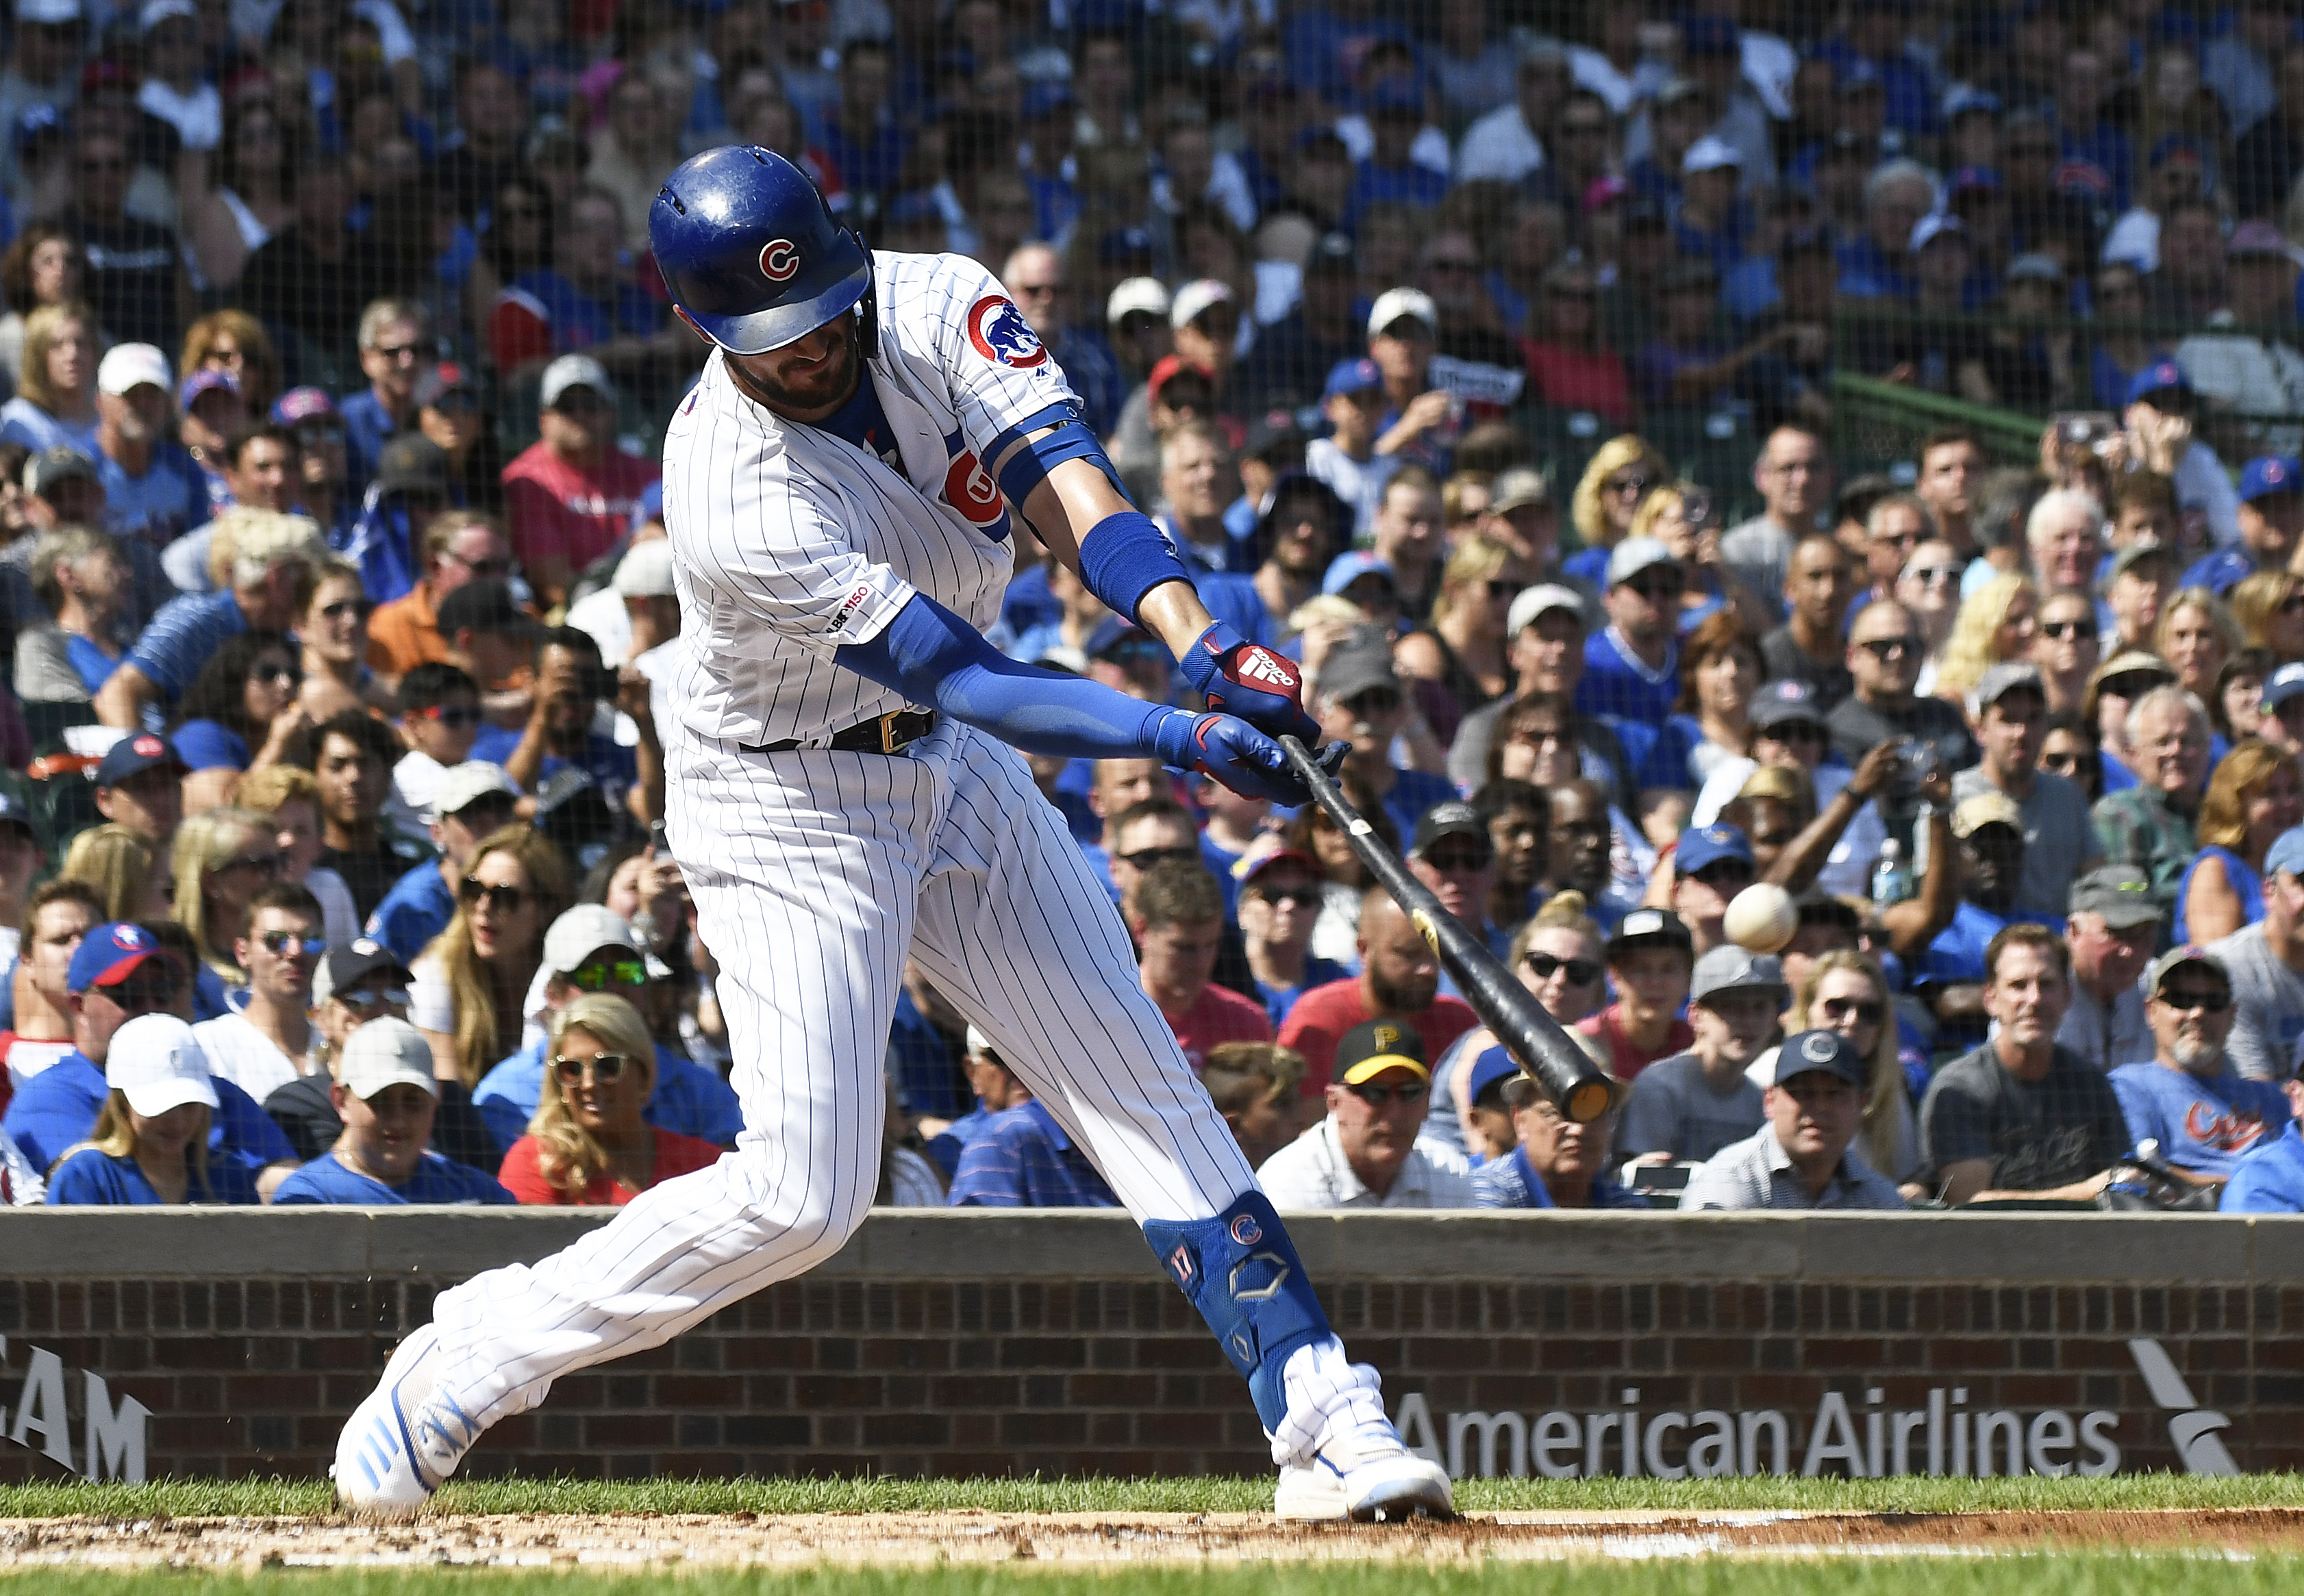 The Cubs' Kris Bryant hits the first of his two home runs Sunday against the Pirates at Wrigley Field.